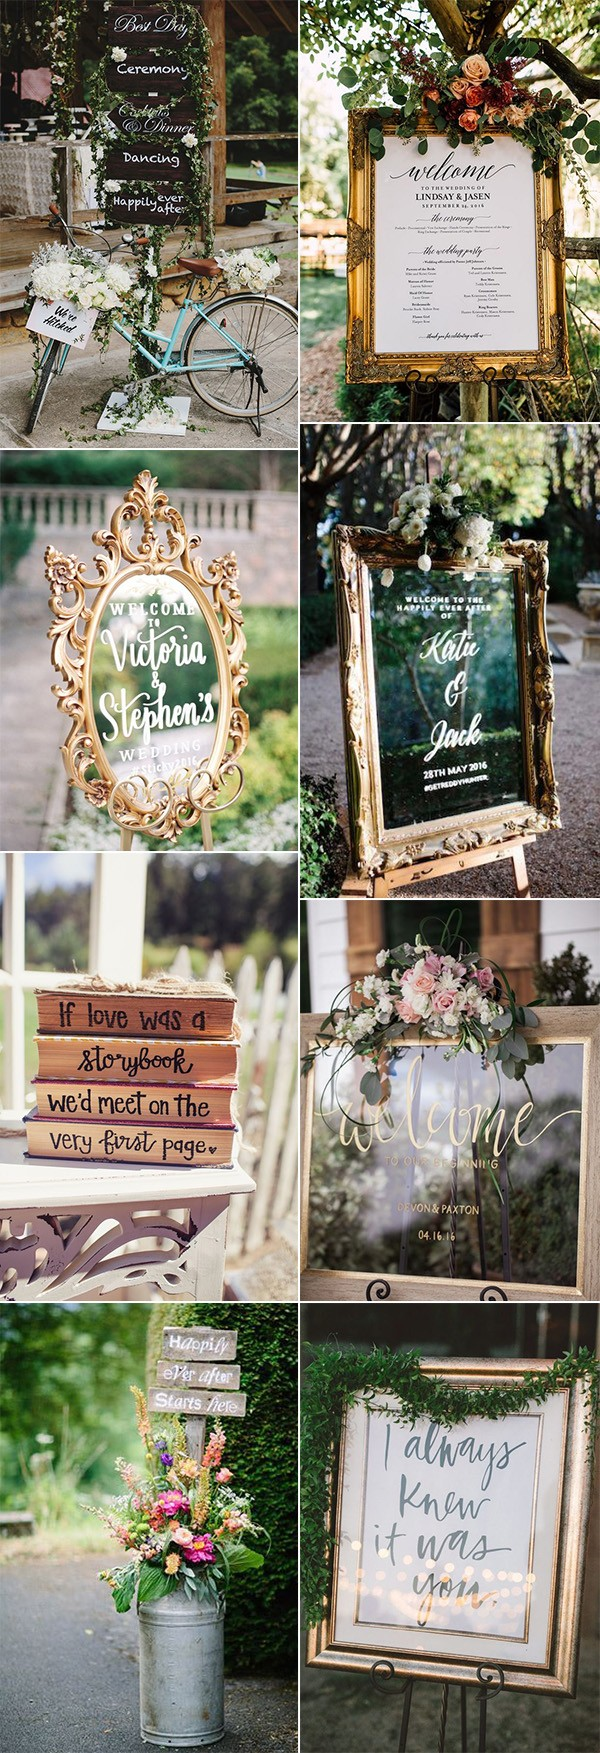 shabby chic wedding decor ideas 60 adorable vintage wedding ideas for 2018 trends 7309